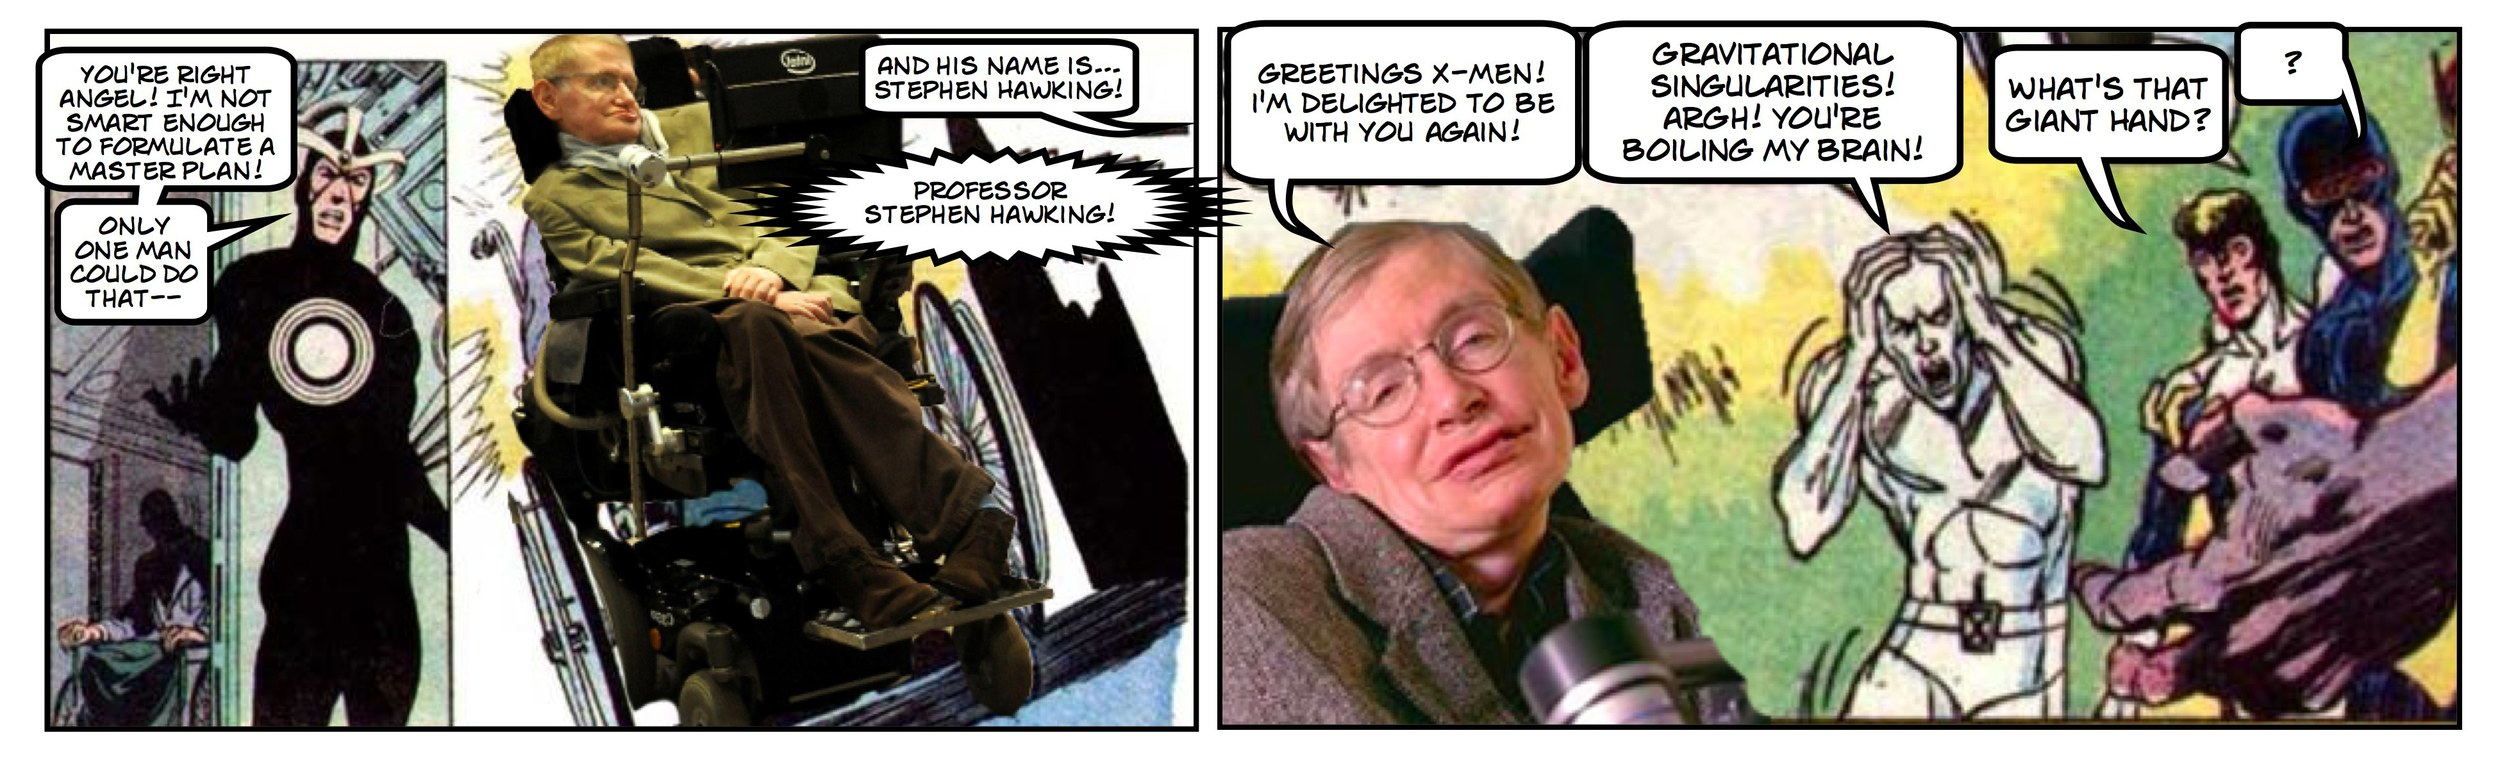 PROFESSOR X VS. PROFESSOR STEPHEN HAWKING